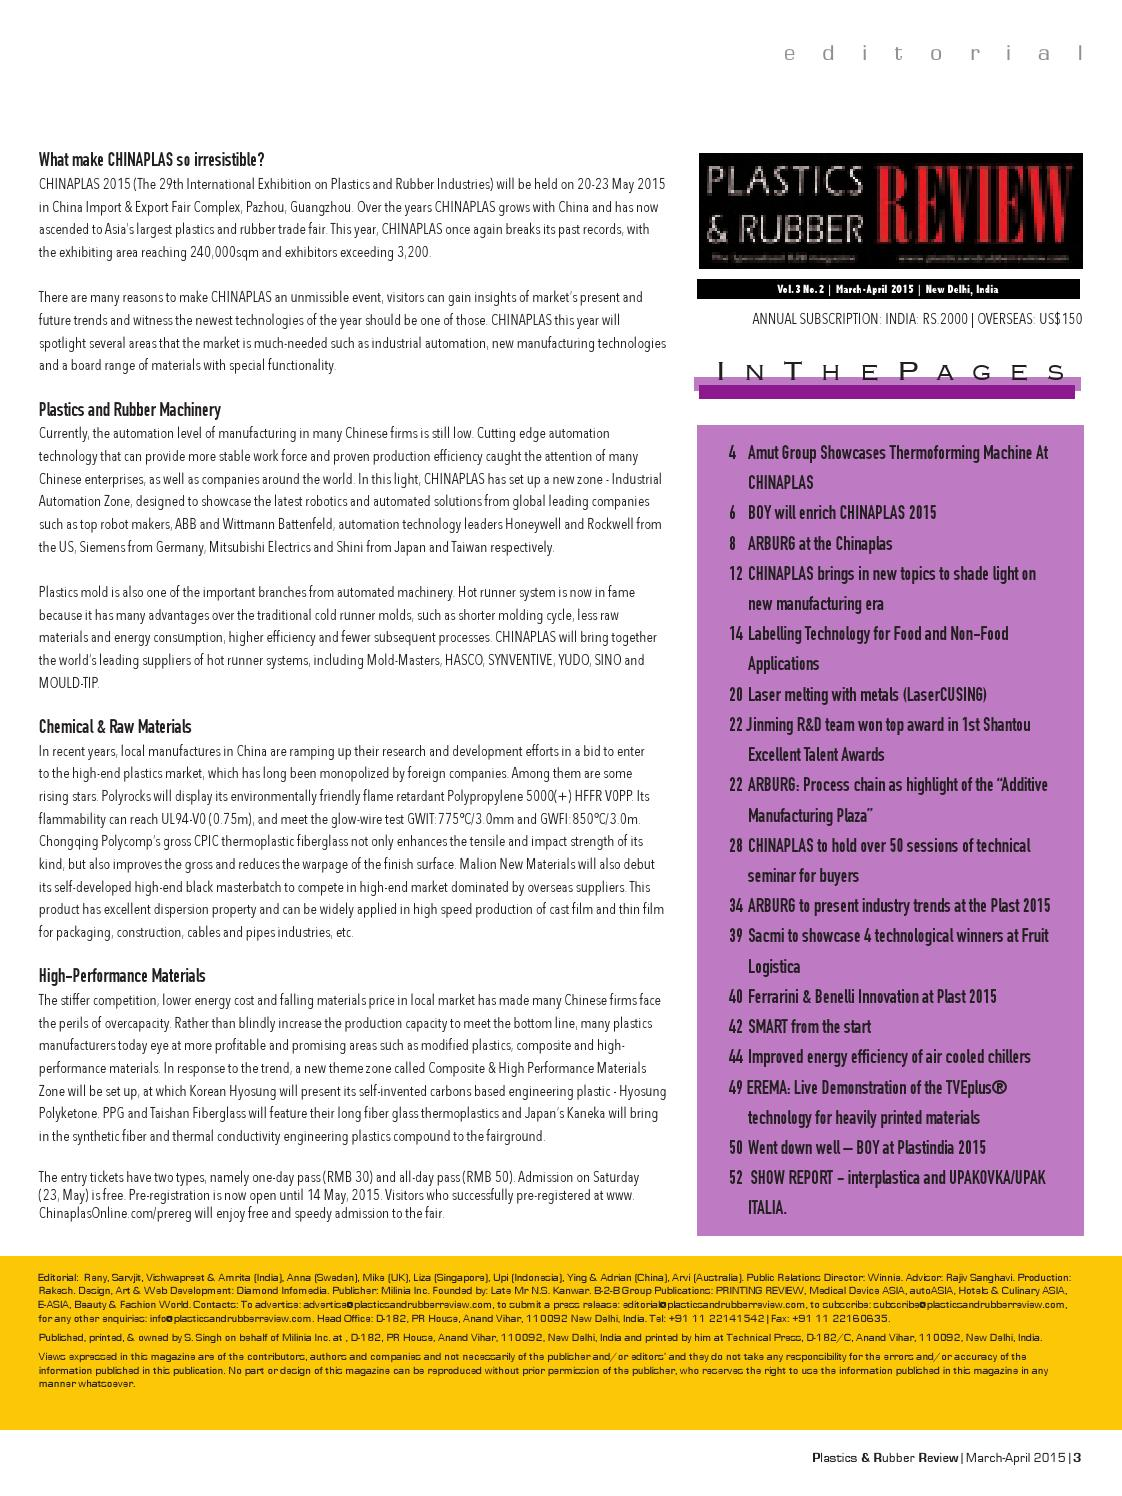 Plastics & Rubber Review by Worldwide Publications - issuu